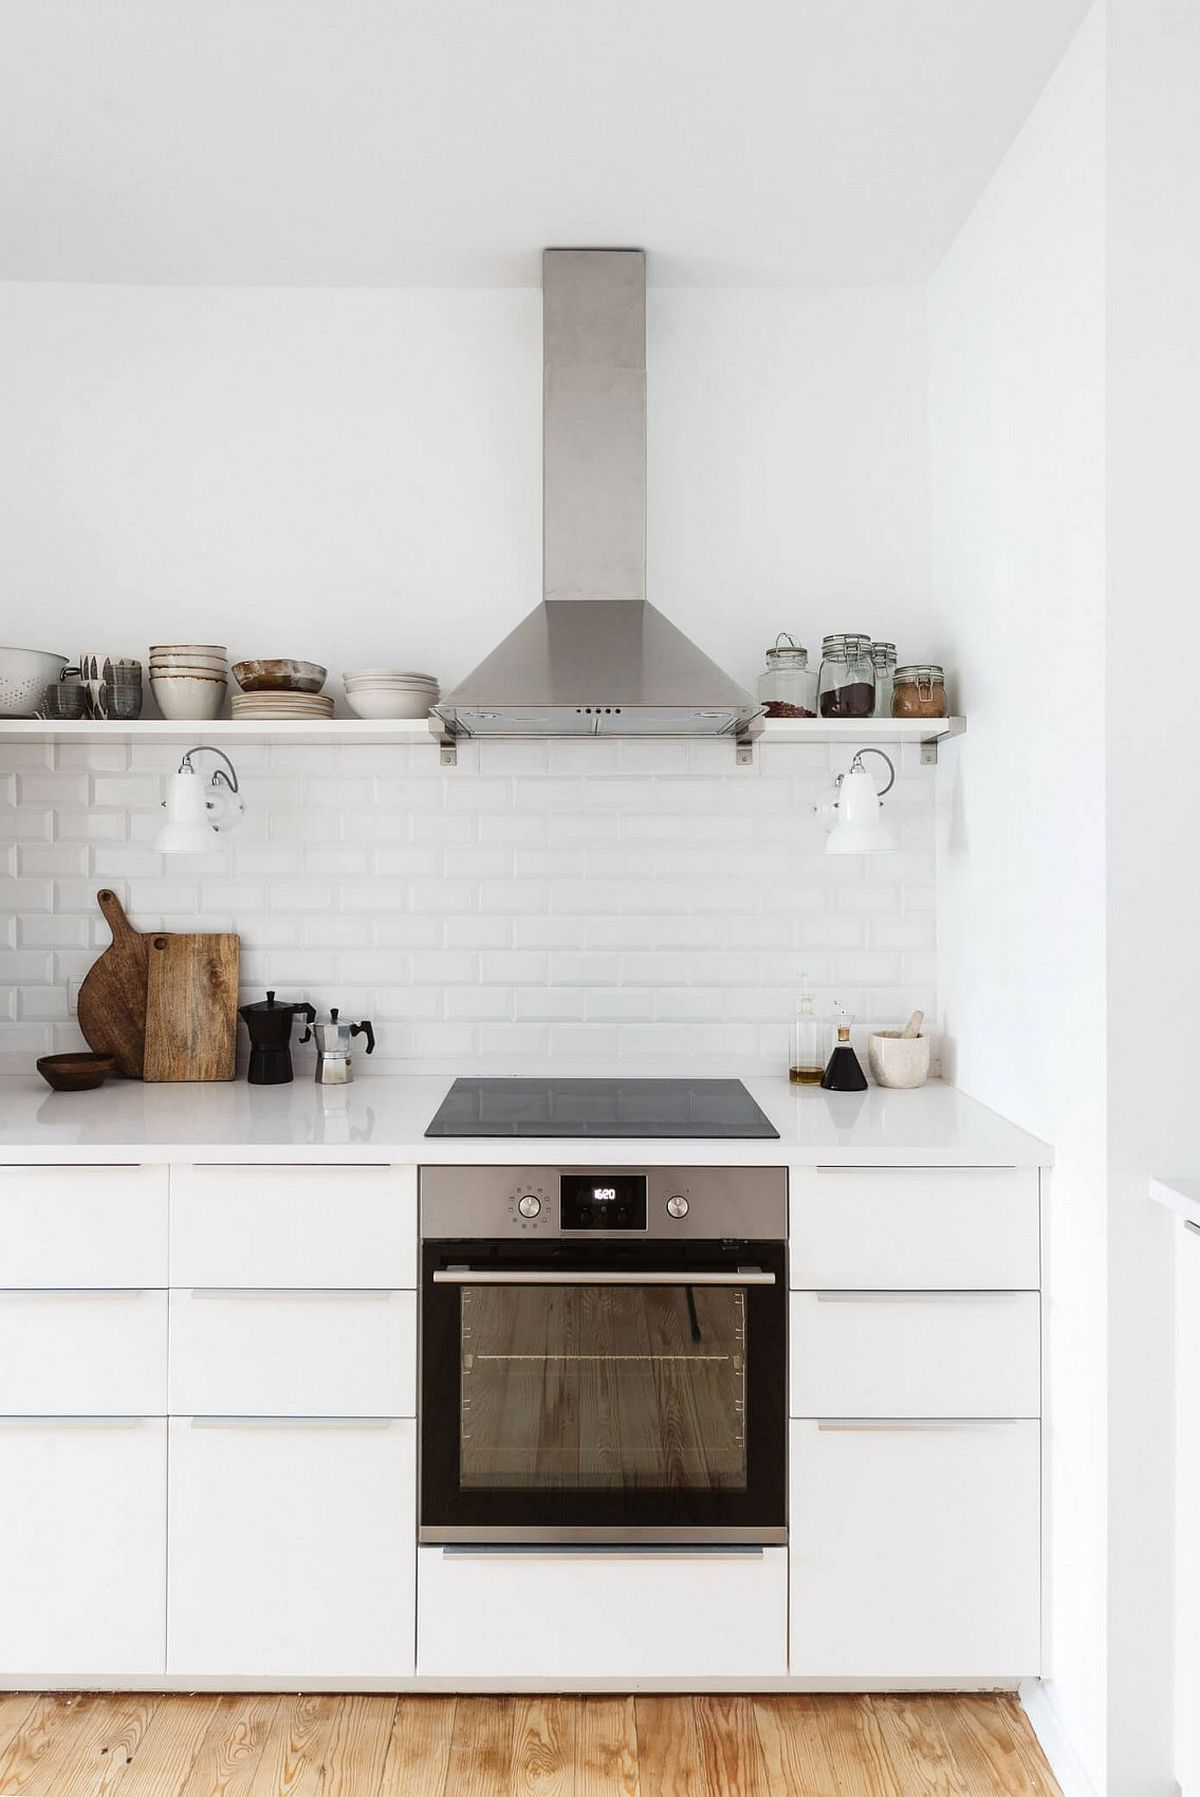 Polished kitchen countertop in white and nifty modern cabinets